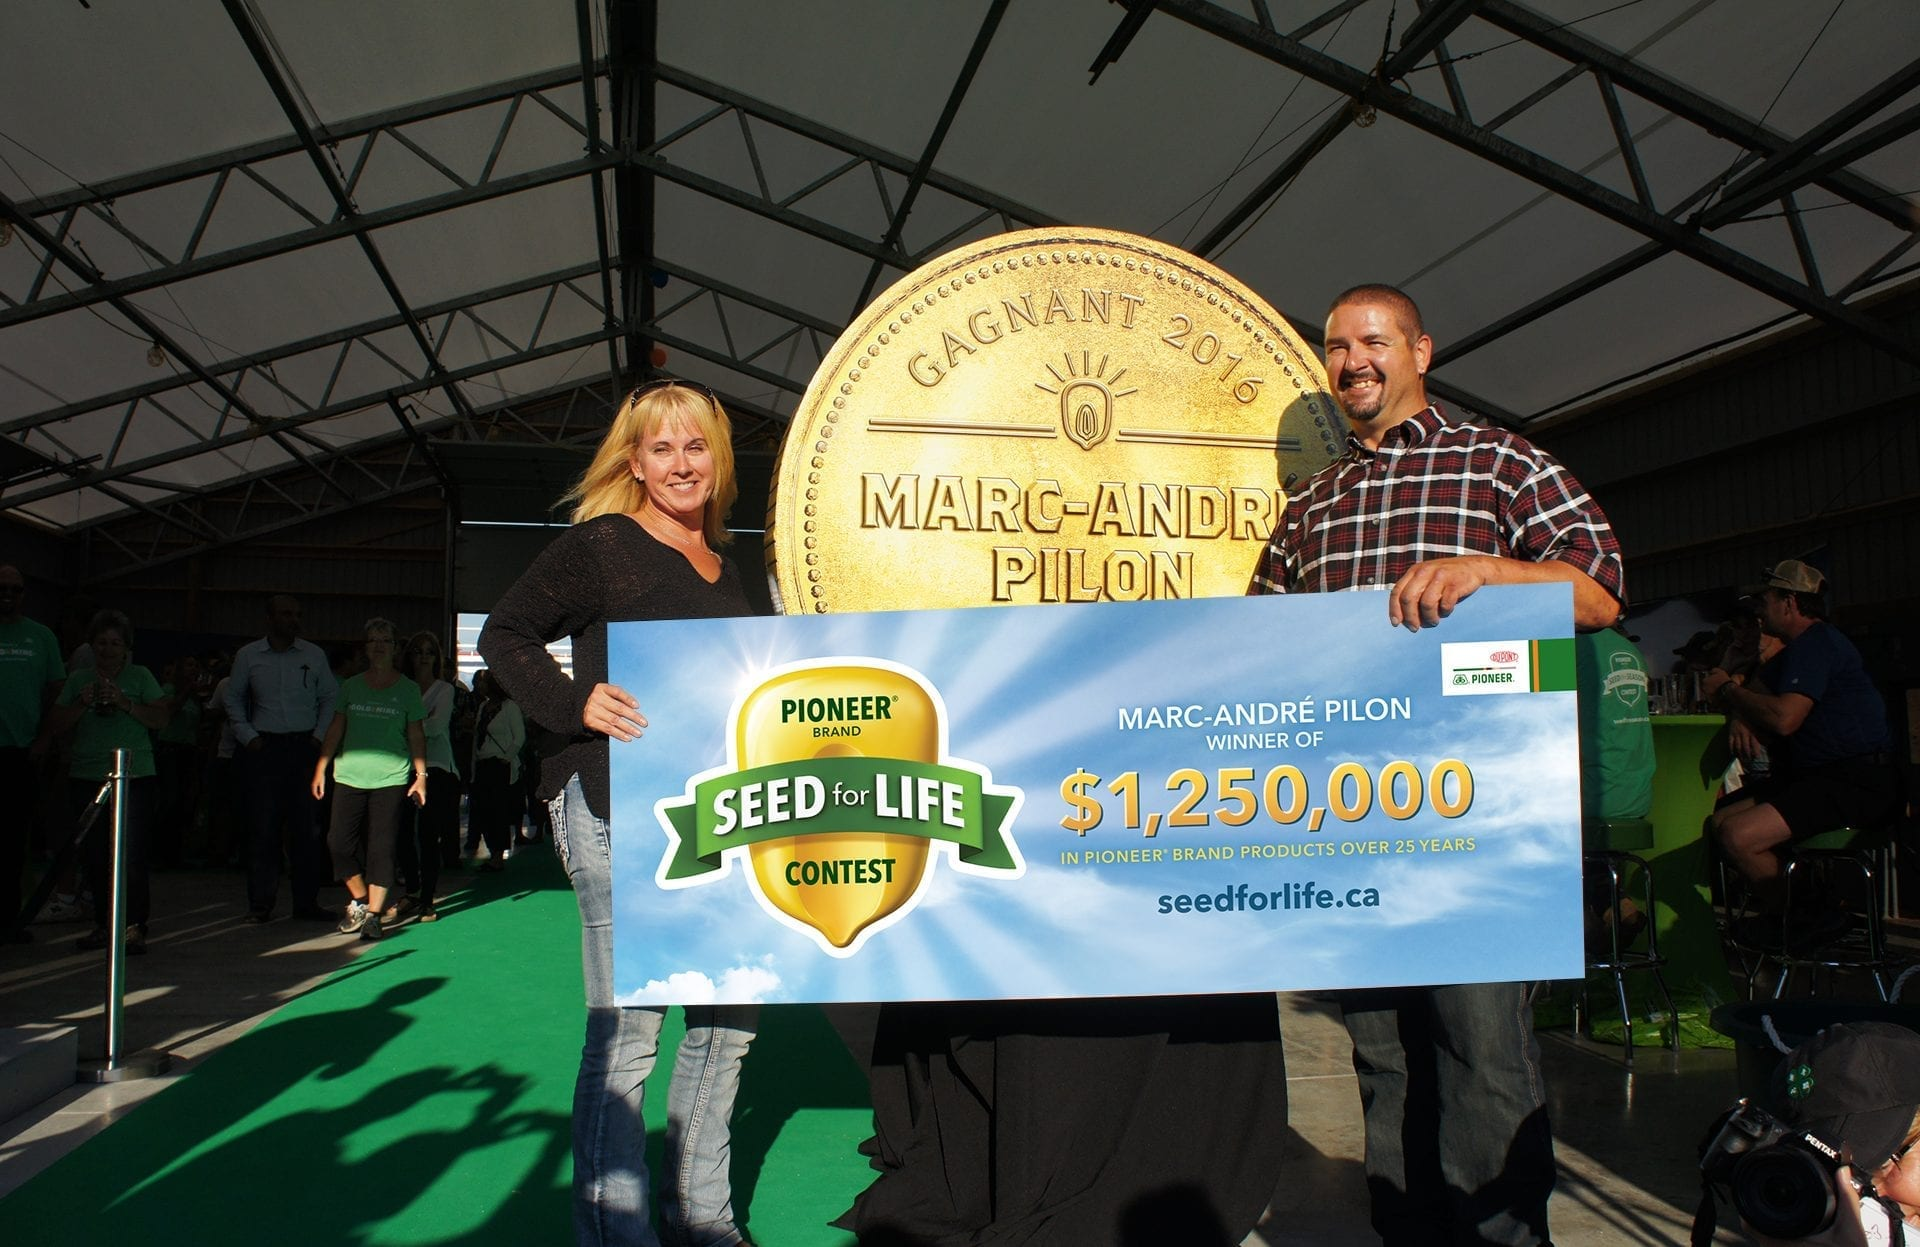 DuPont Pioneer Seed for Life grand prize winner coin and banner